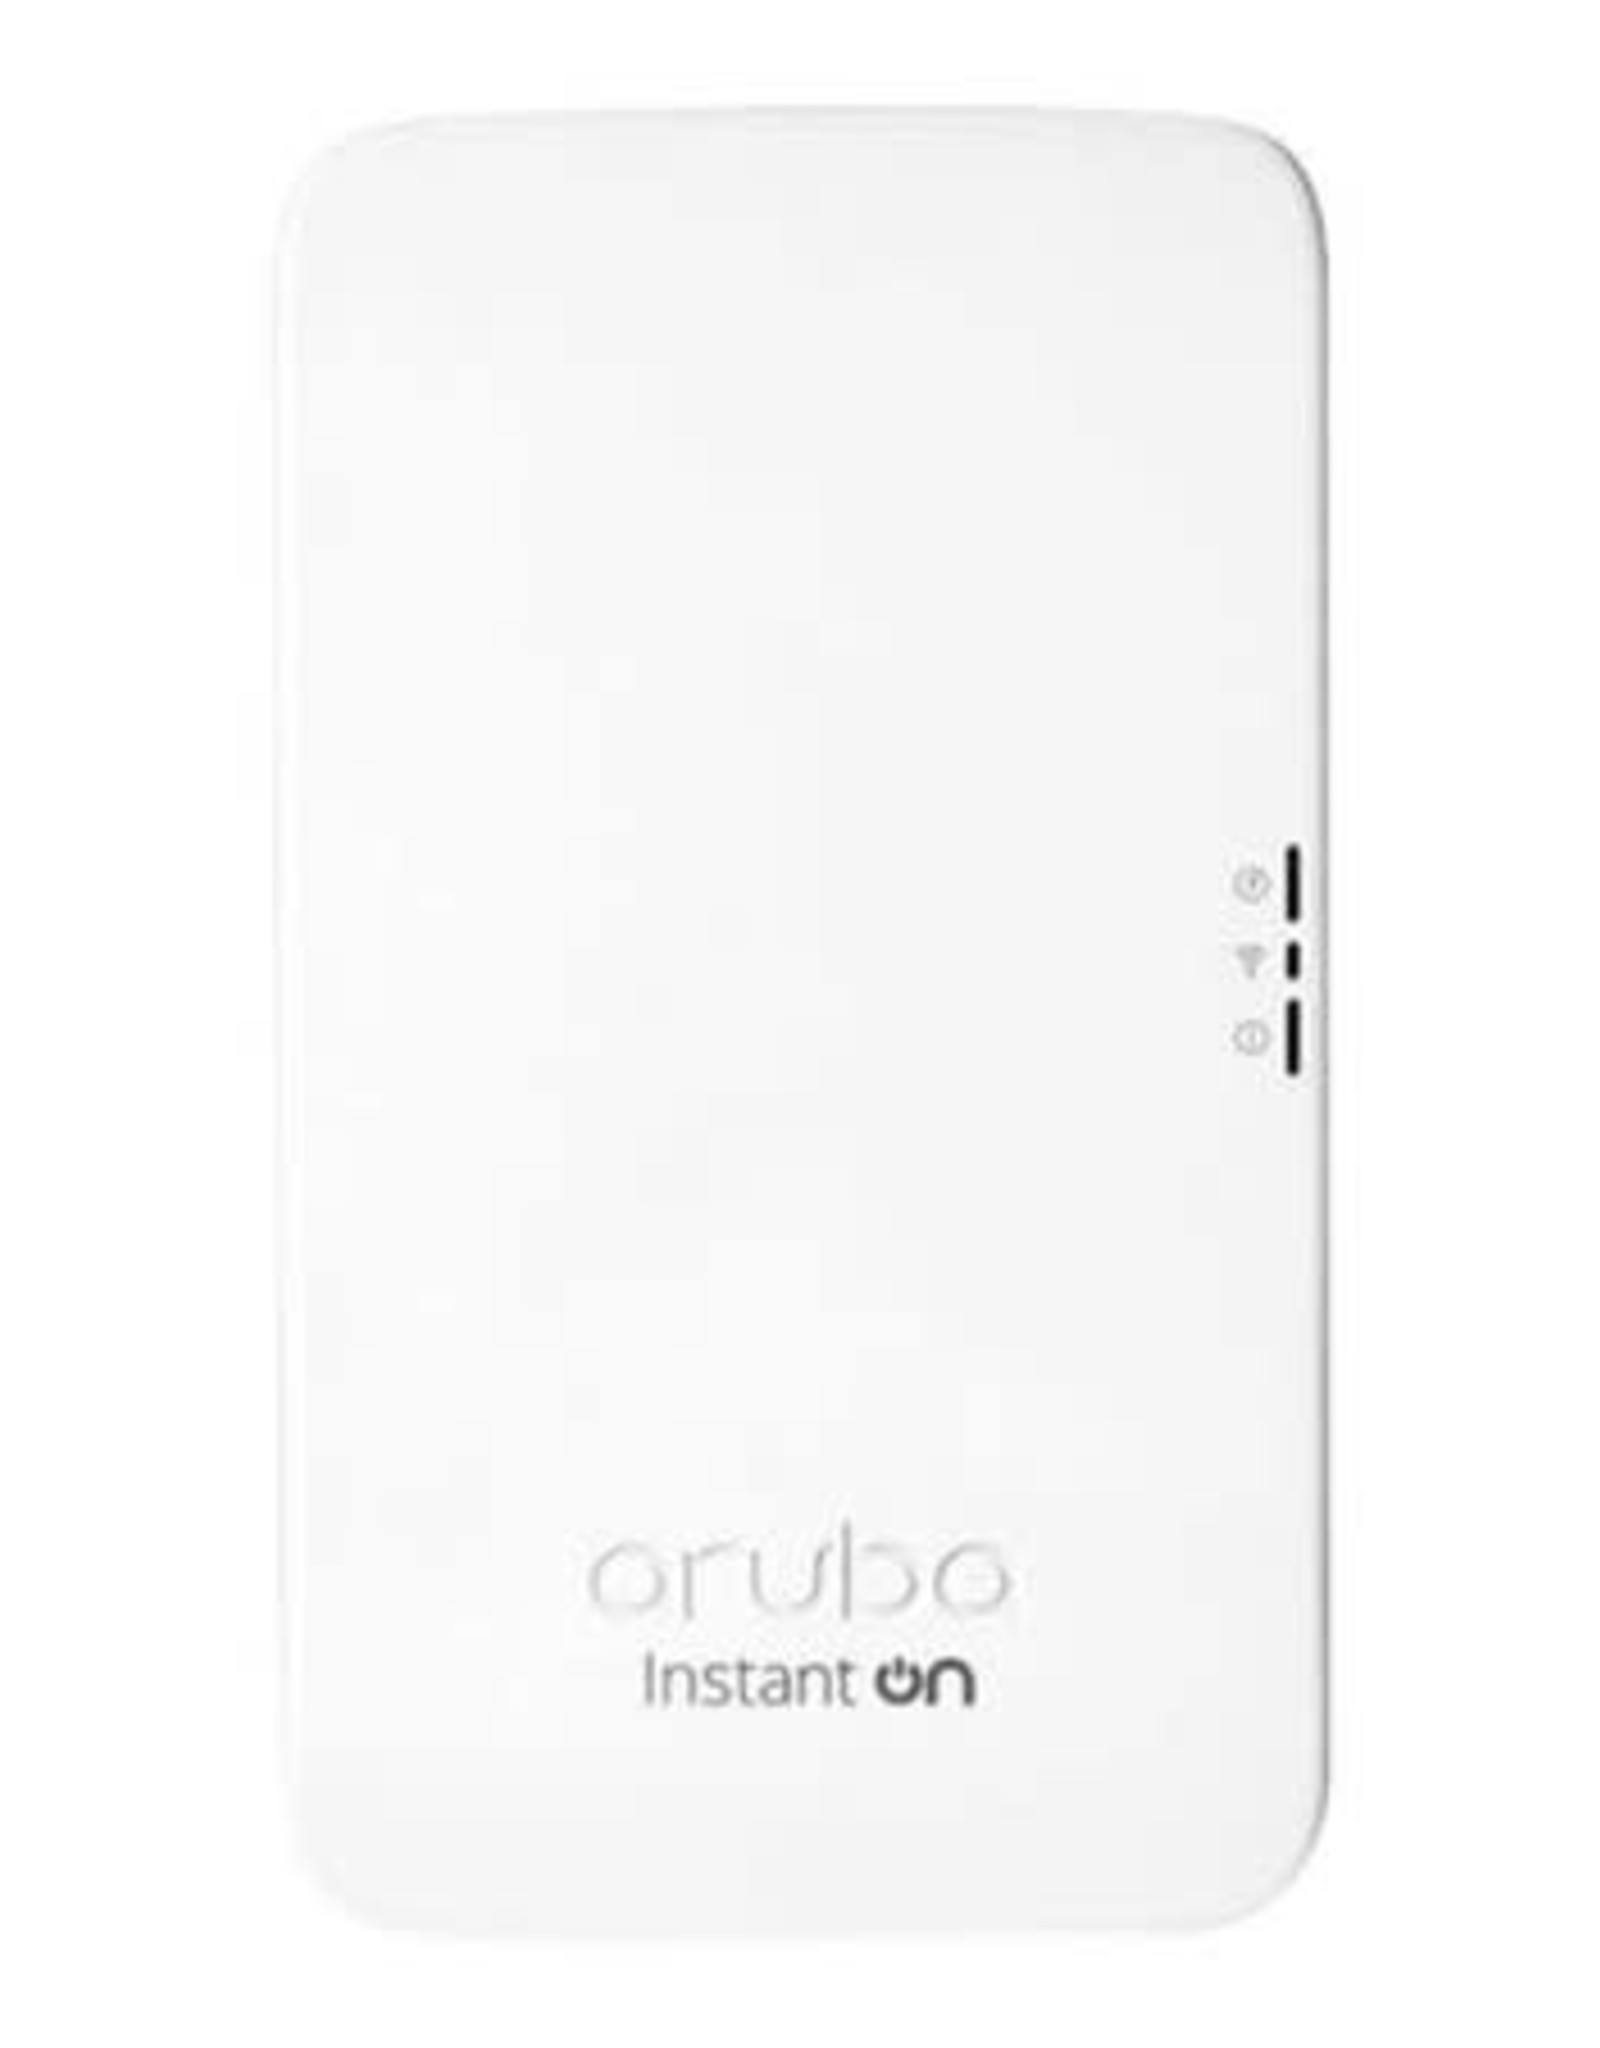 HPE ARUBA INSTANT ON AP11D (RW) - Desk / Wall WIRELESS ACCESS POINT R2X16A